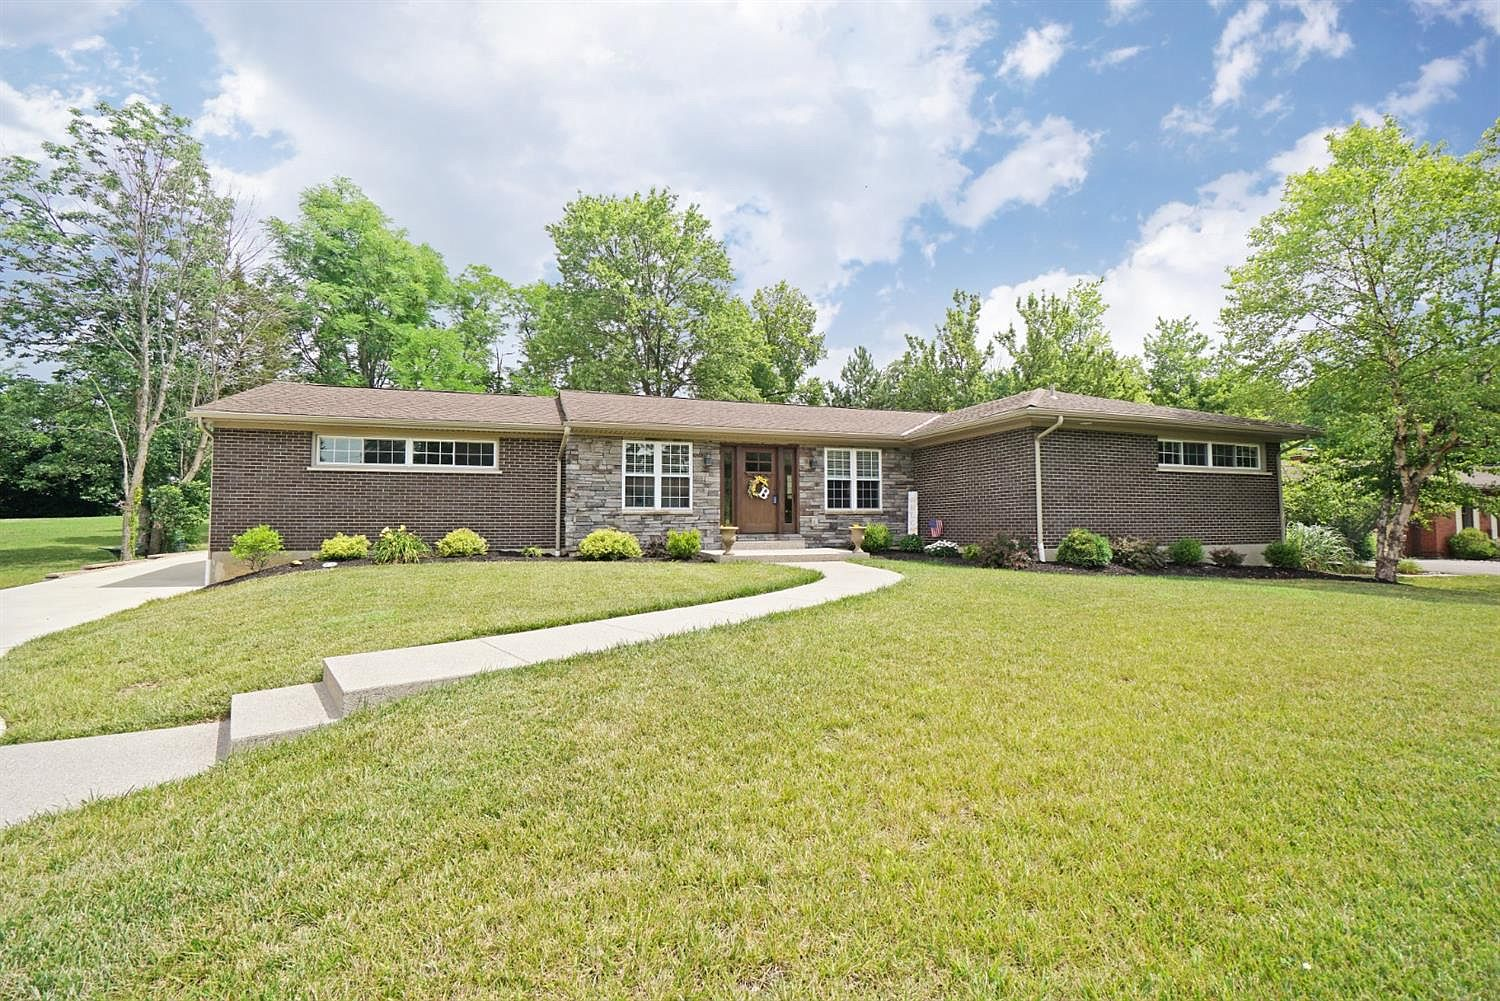 5658 Muirwood Dr Cincinnati Oh 45233 Zillow